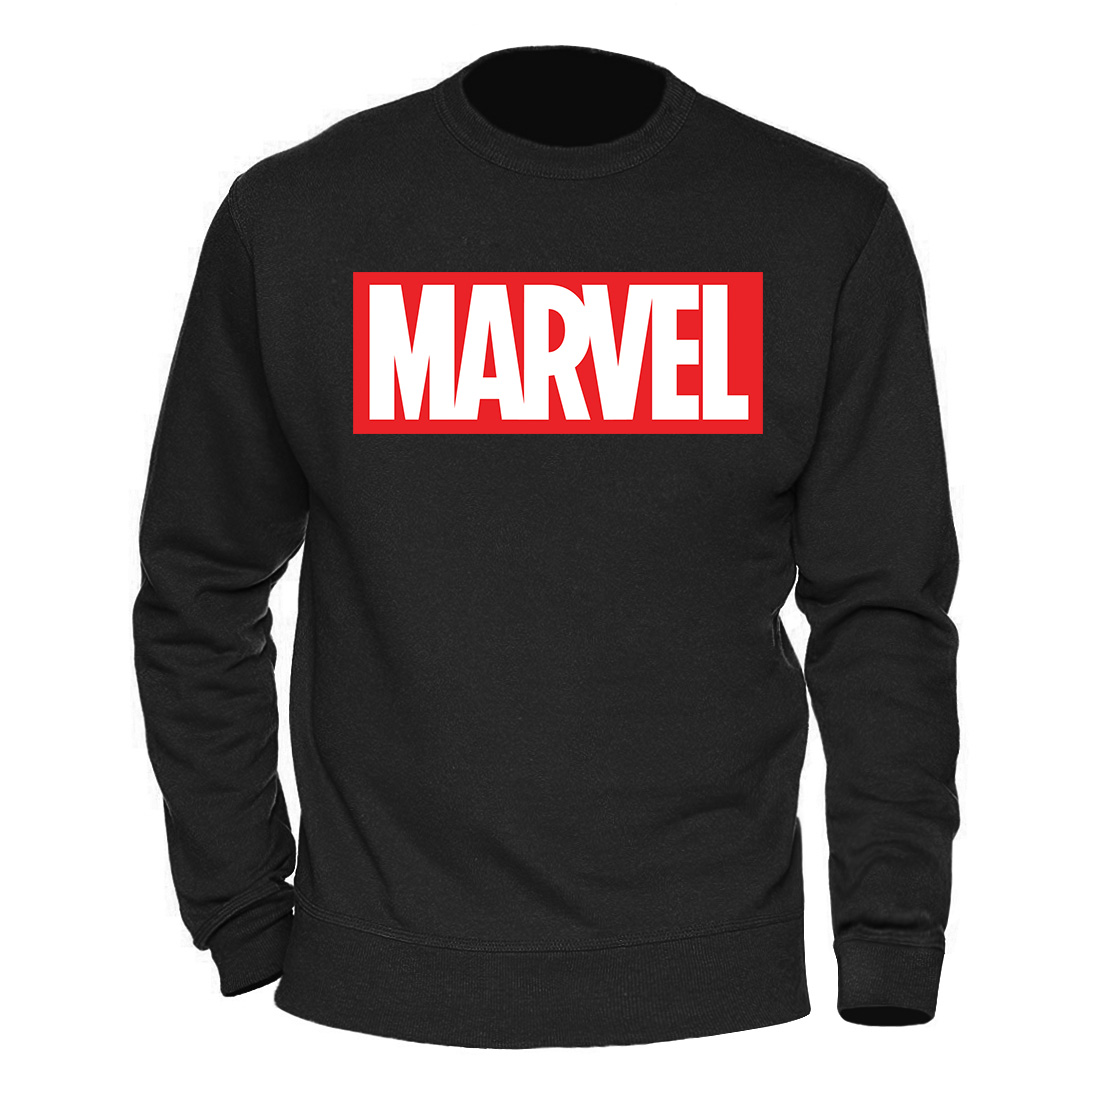 2020 Hot Newest Super Hero Marvel Sweatshirts Fashion Suprem Men Marvel Cool Printed Sweatshirts Streetwear Men Clothing